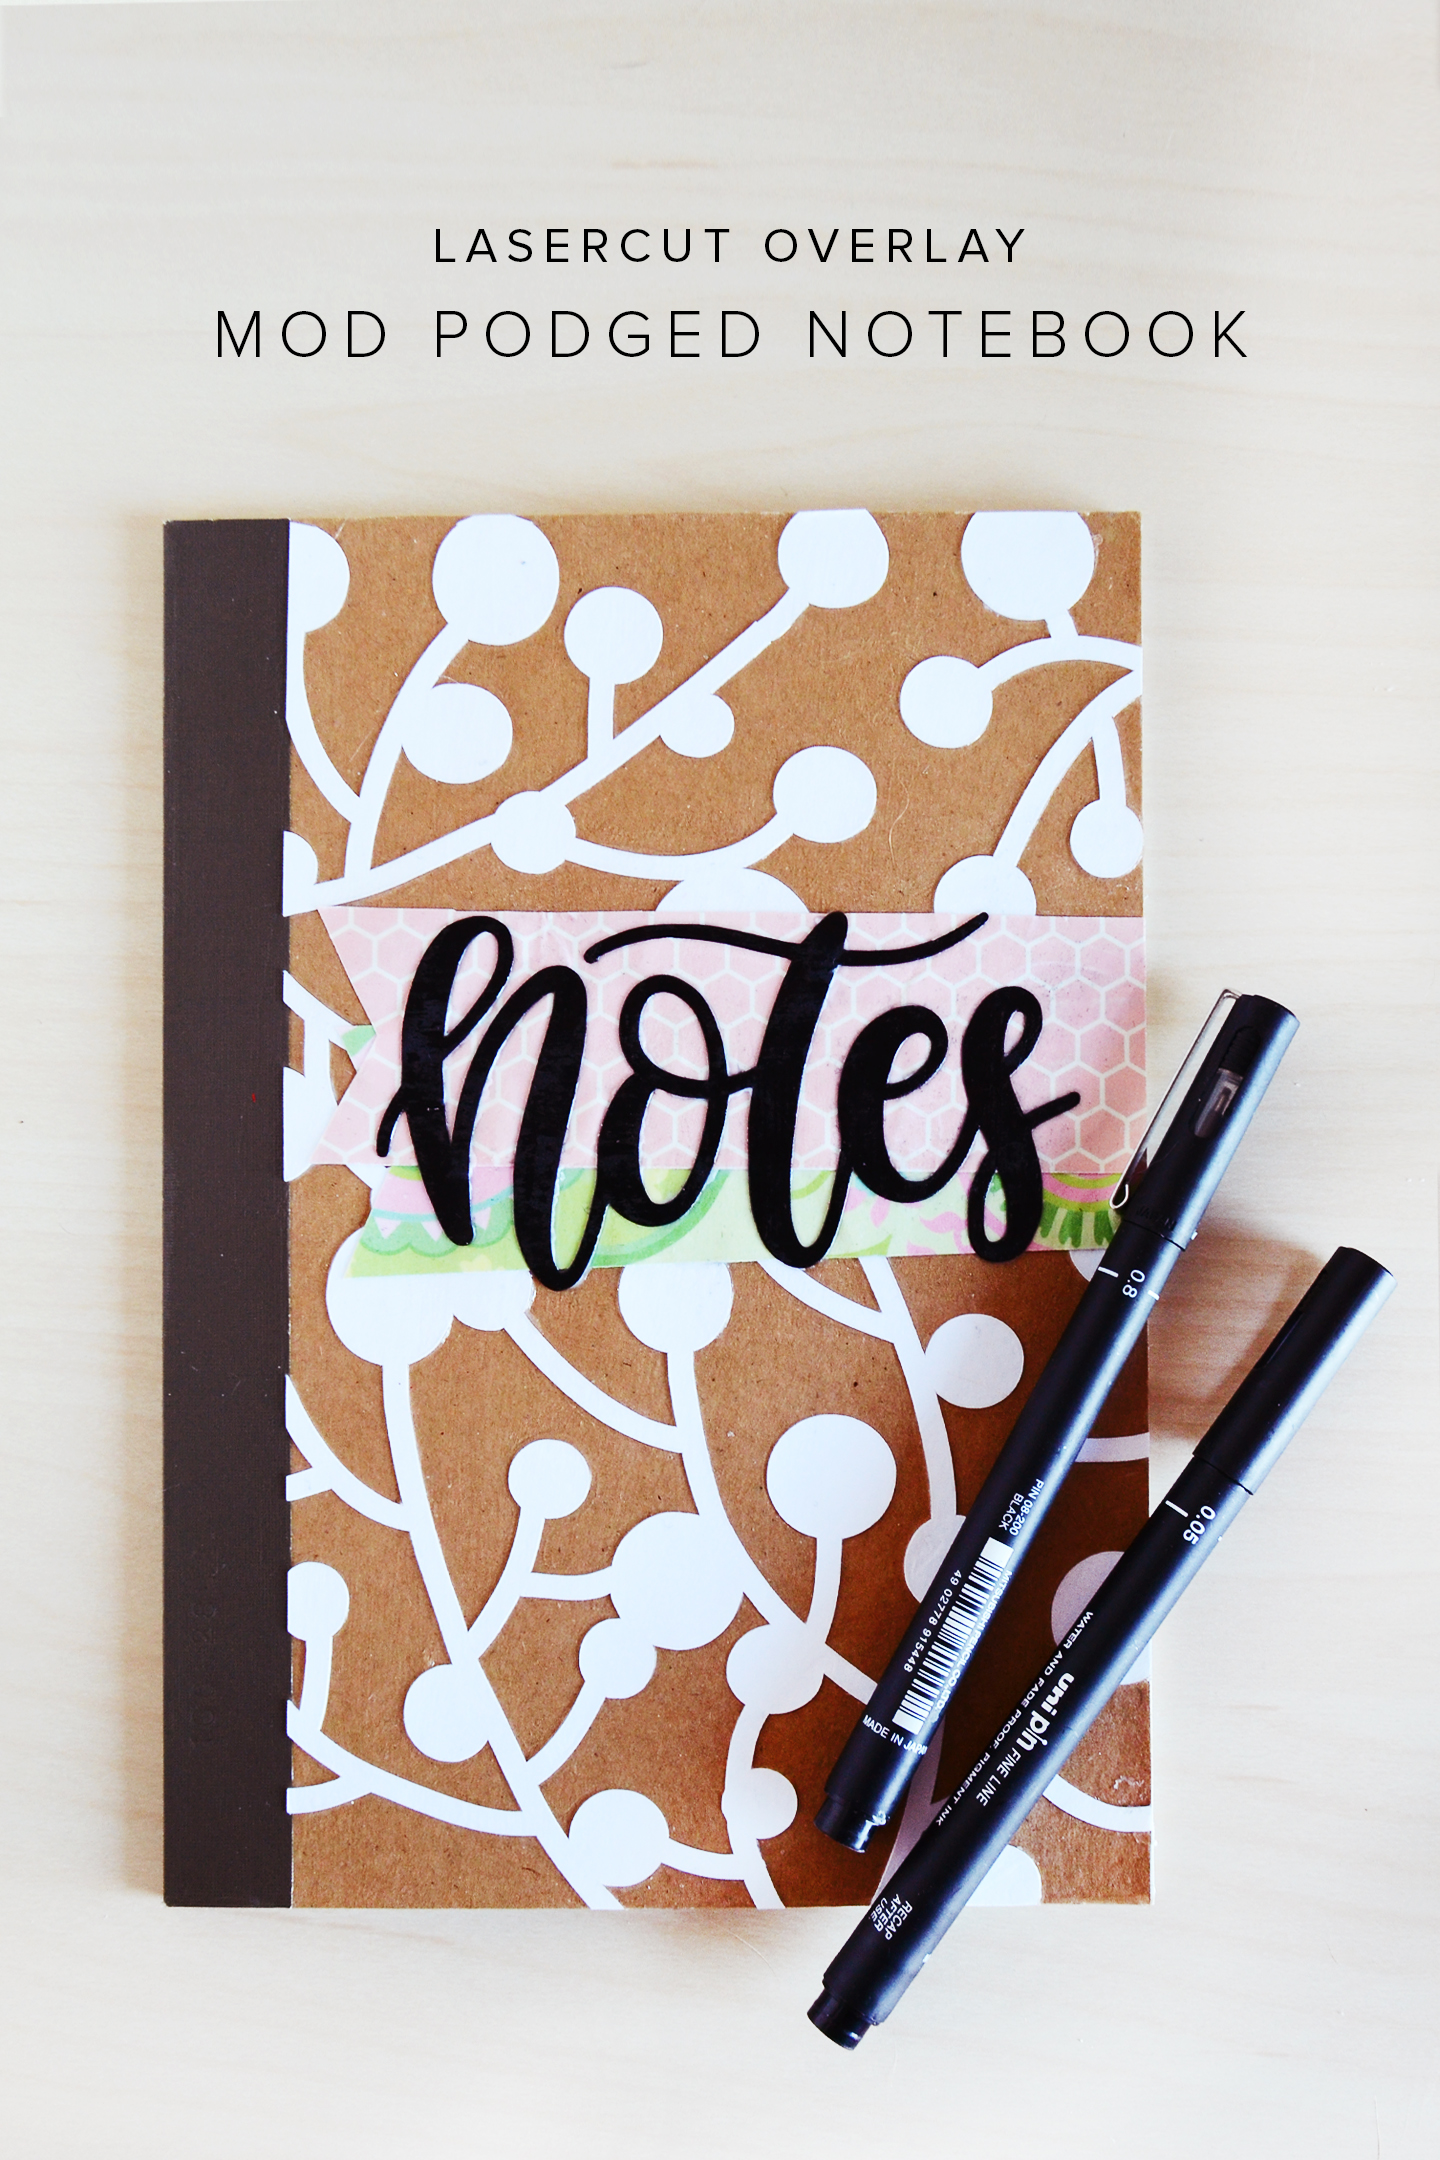 Creative Design To Cover Notebook : Overlay diy notebook designs mod podge rocks